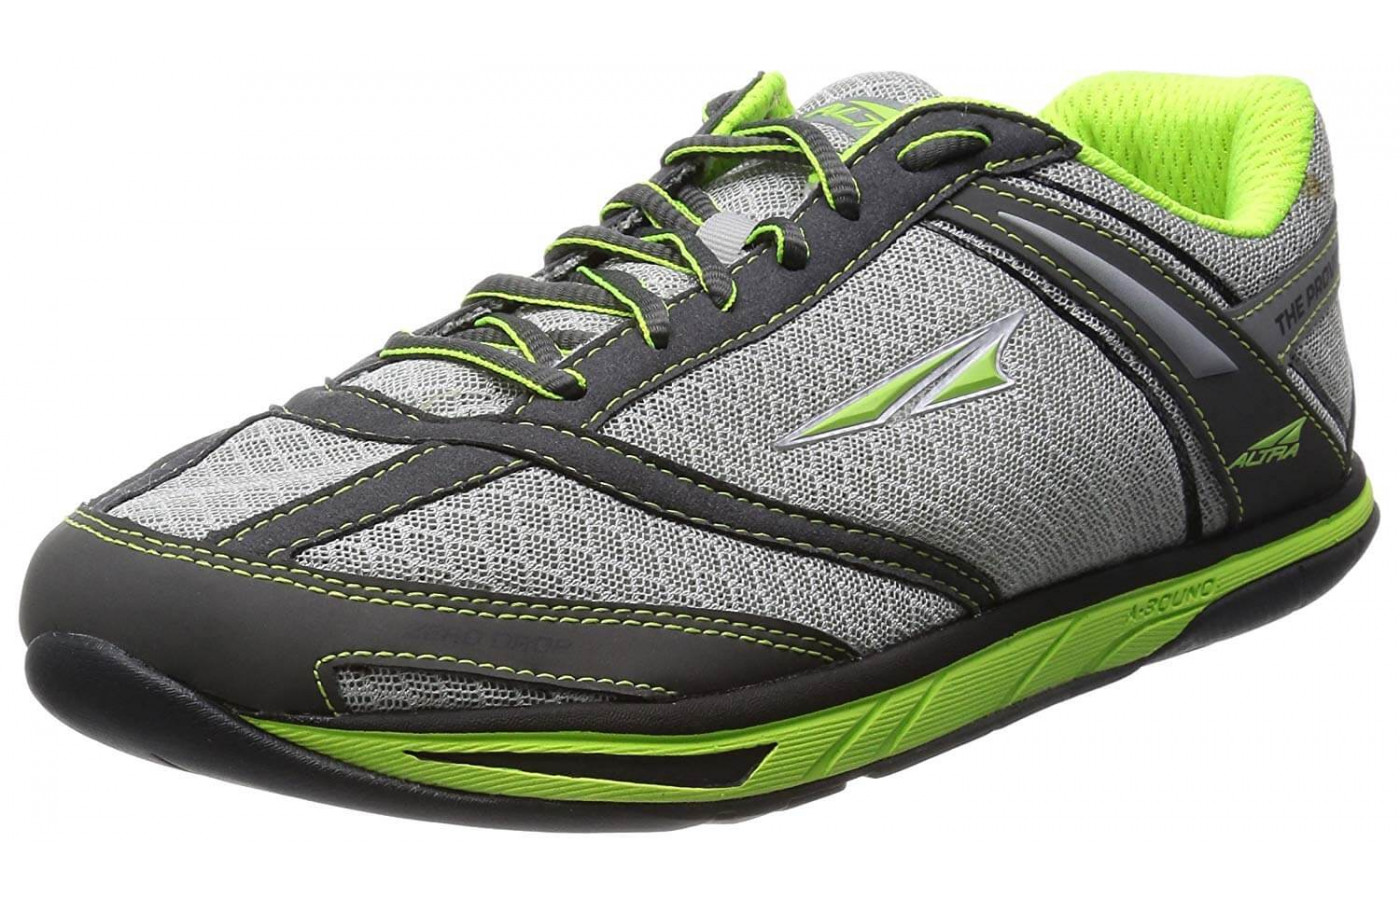 The Altra Provision provides ample stability features